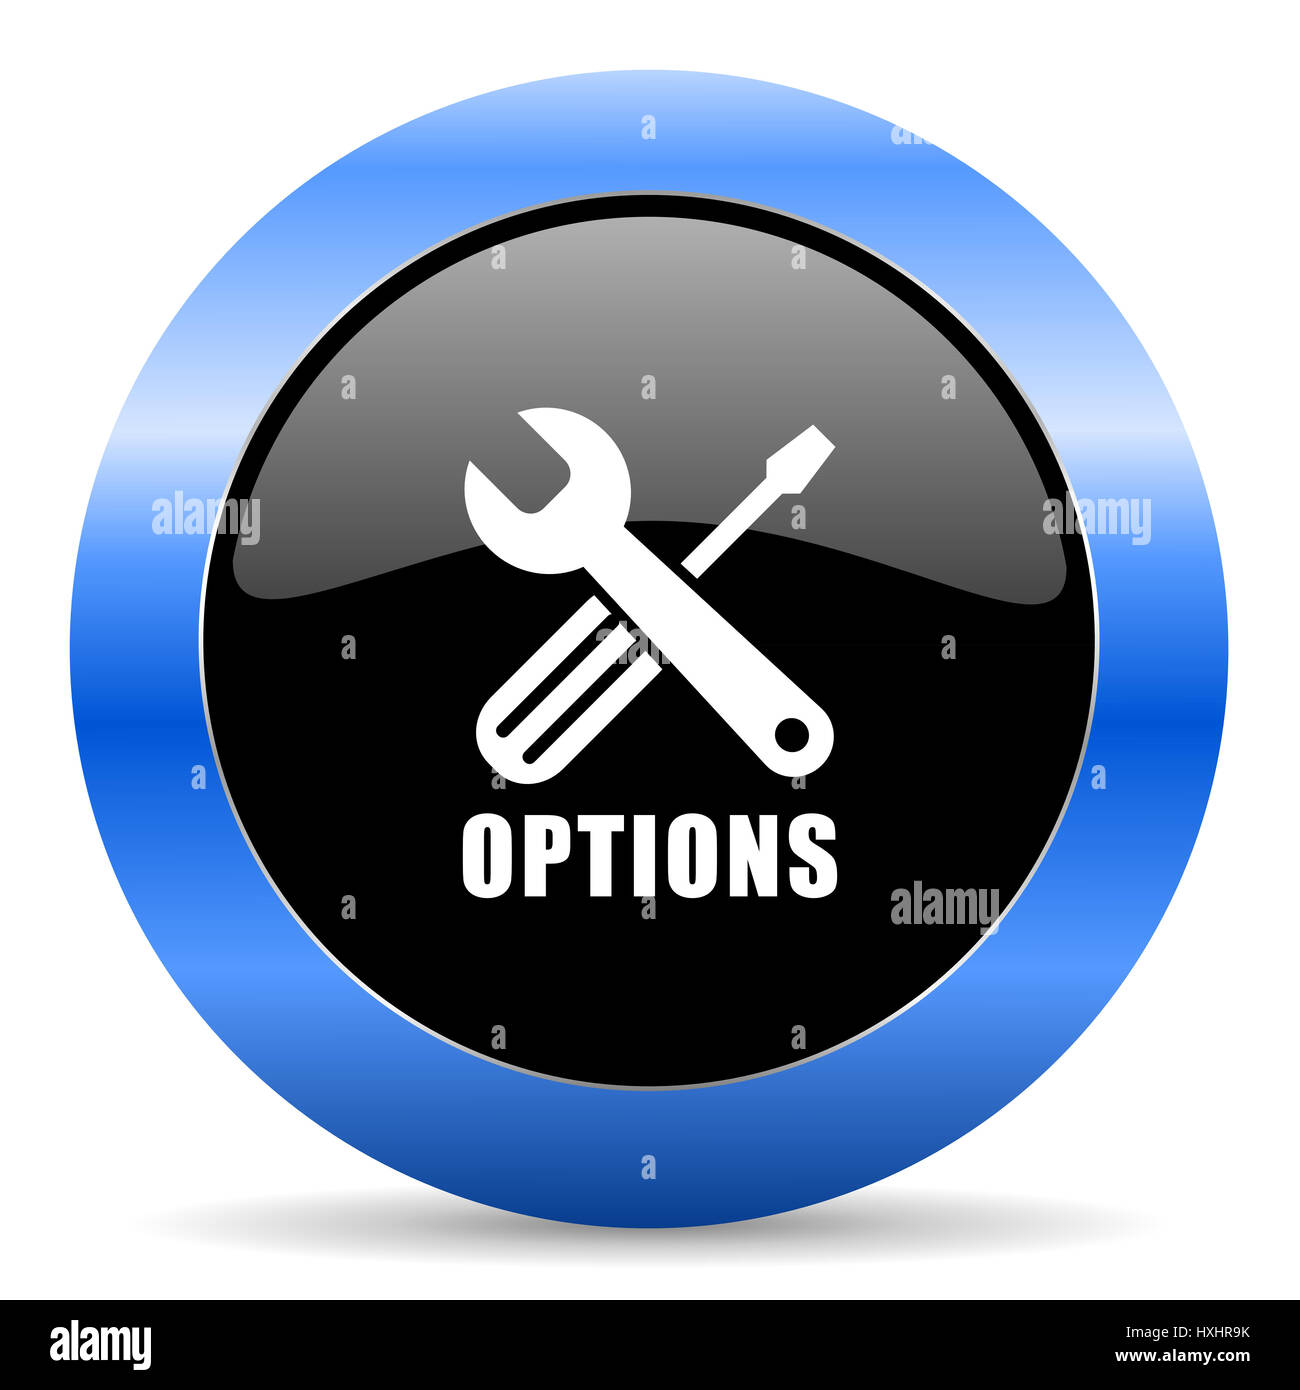 Options black and blue web design round internet icon with shadow on white background. - Stock Image